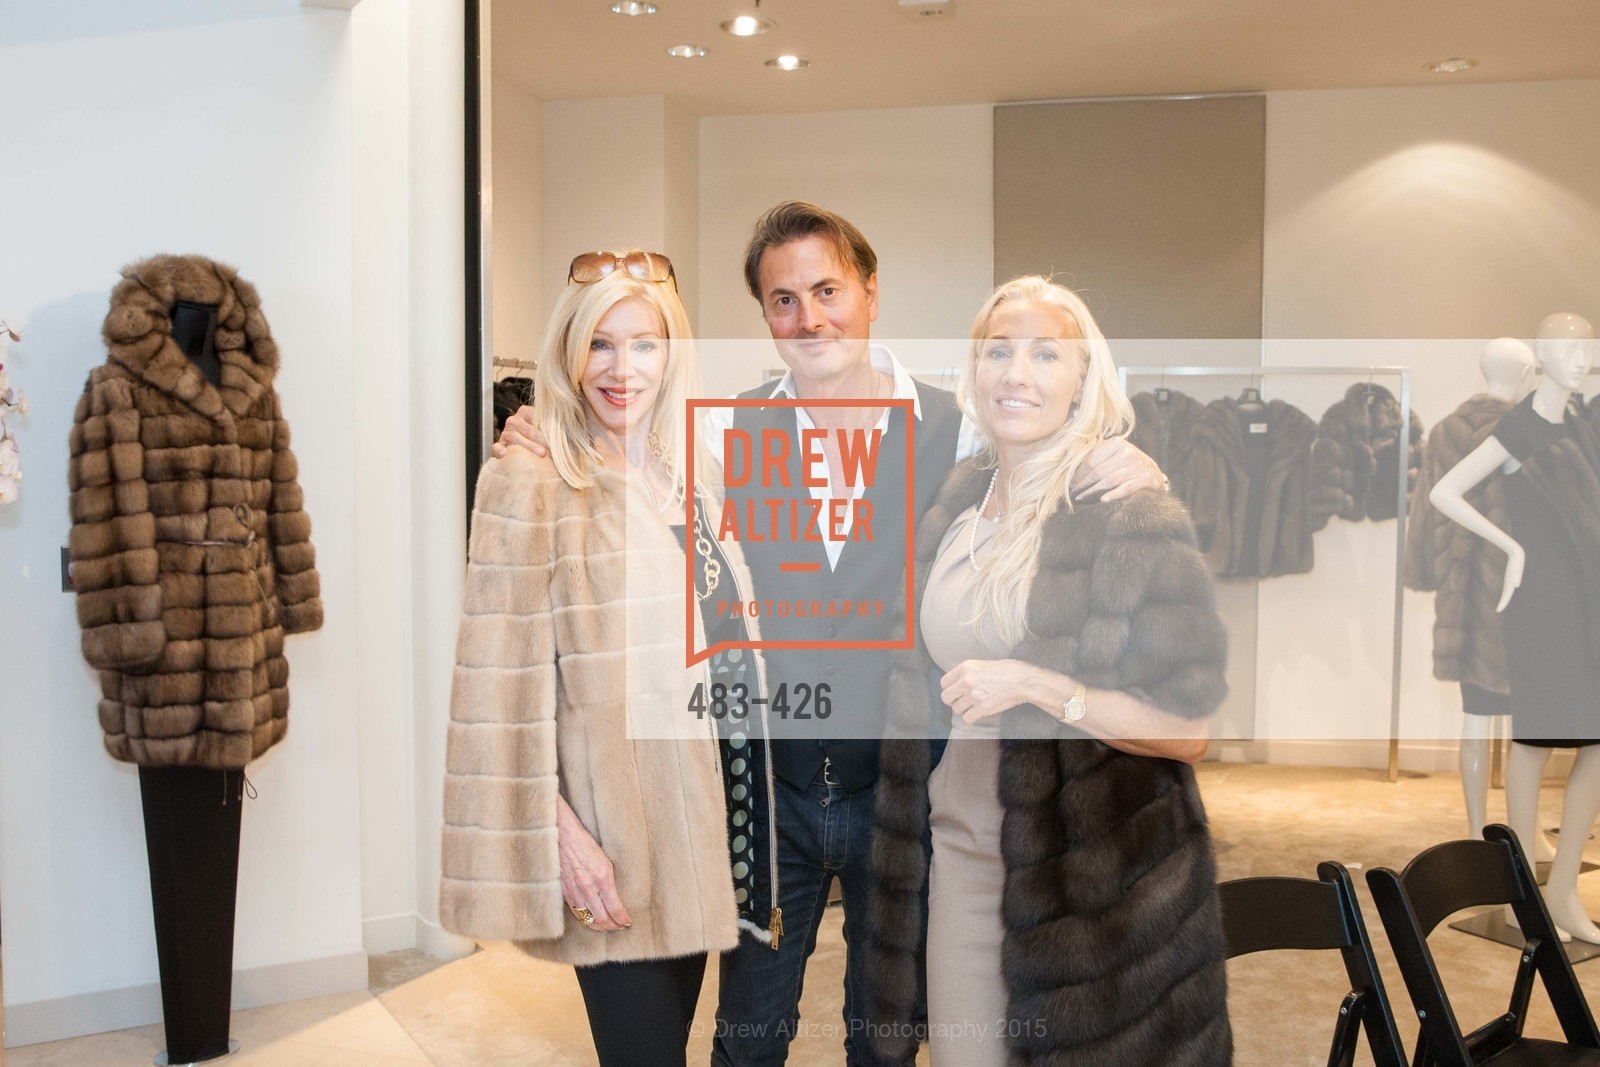 Pamala Deikel, Brunello Rindi, Zoe Sexton, Rindi at Saks Fur Salon, Saks Fifth Avenue, Fur Salon, October 29th, 2015,Drew Altizer, Drew Altizer Photography, full-service agency, private events, San Francisco photographer, photographer california